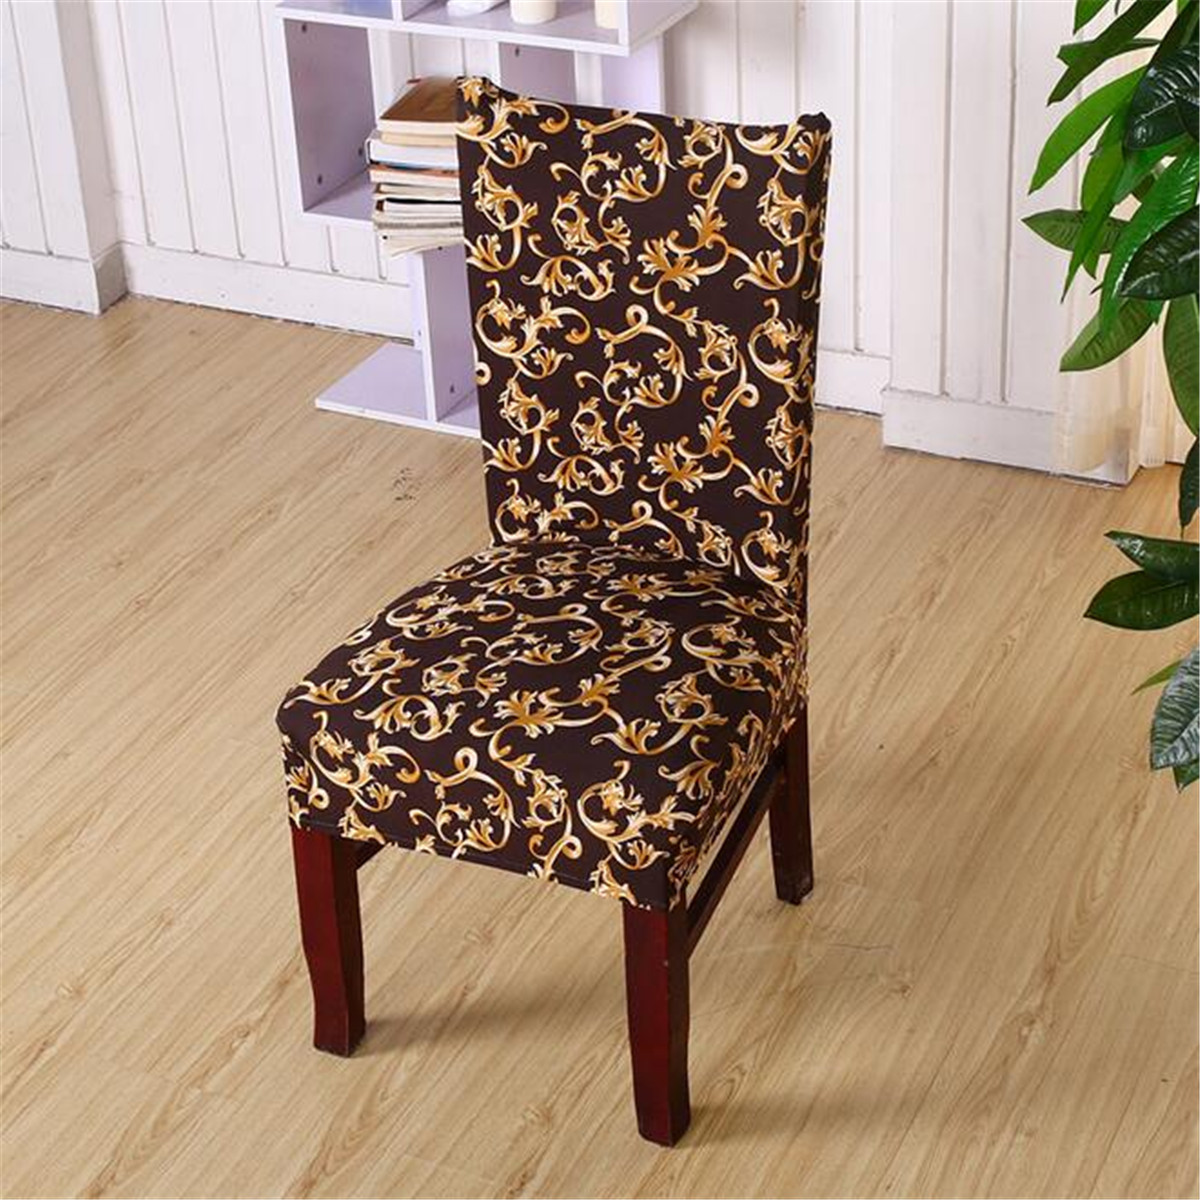 party chair covers walmart patio club with ottoman soft spandex fit stretch short dining room printed pattern banquet seat protector slipcover for hone hotel